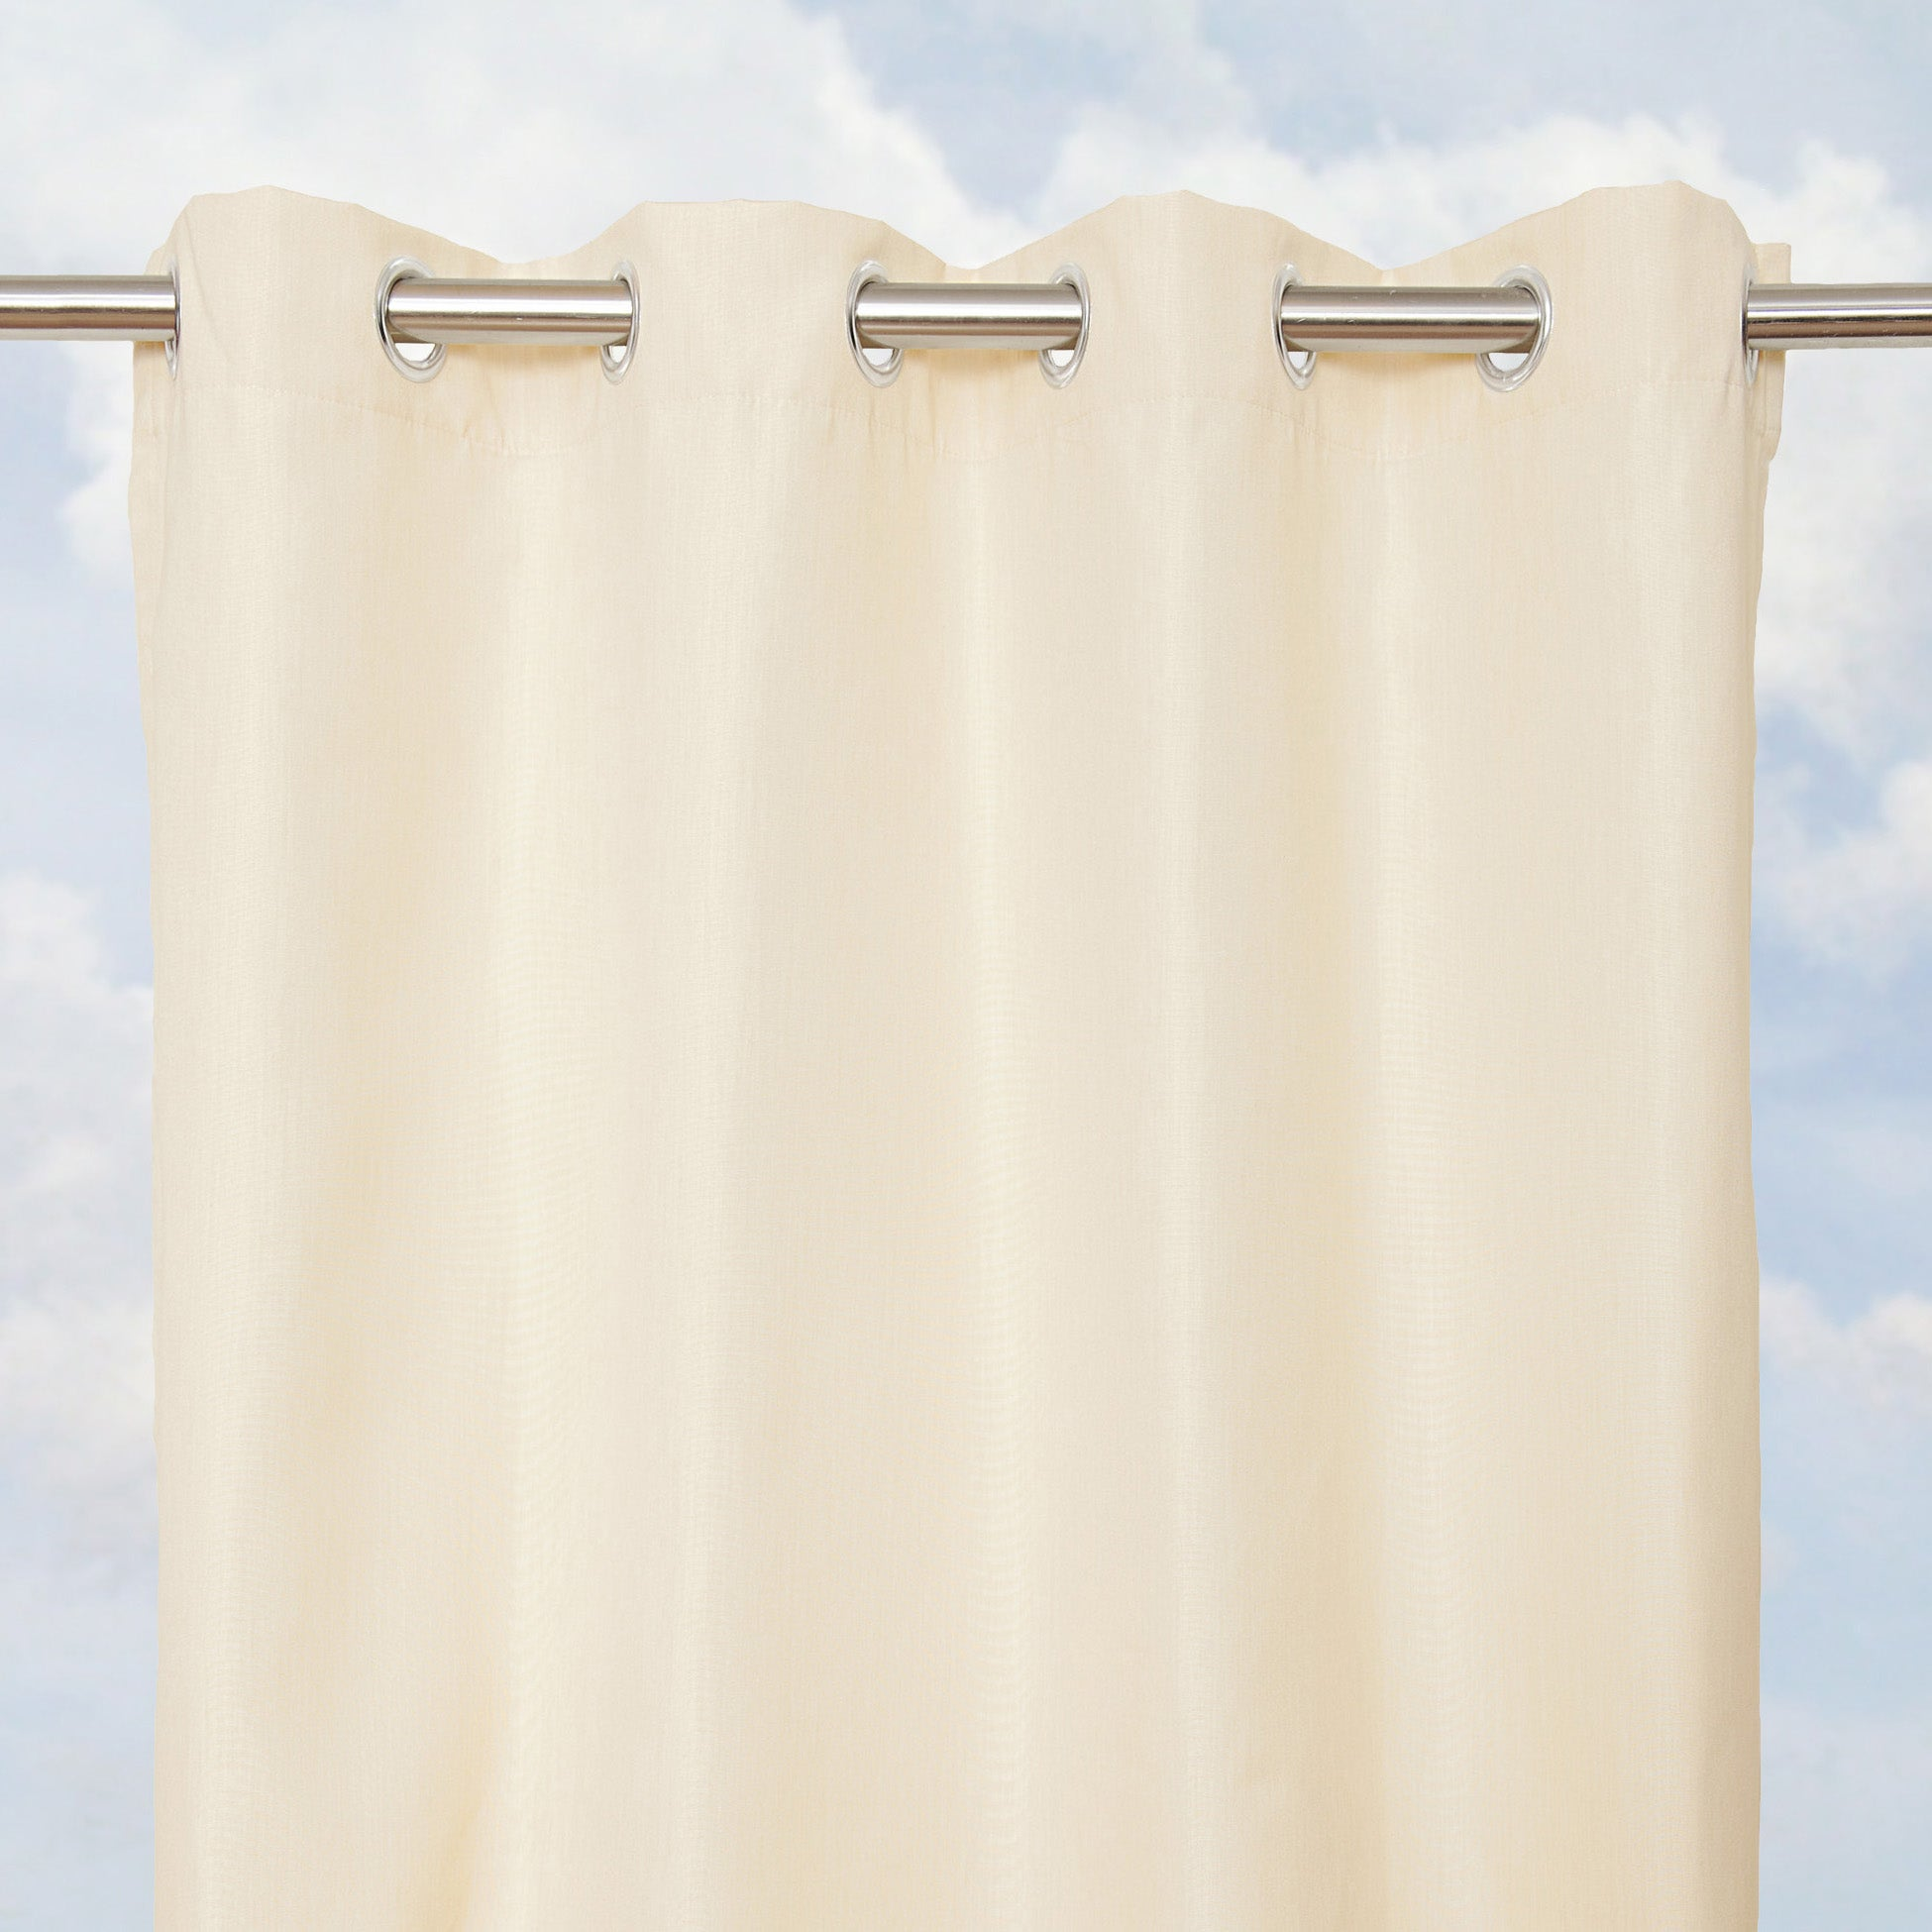 Sunbrella Bay View Vellum 96-inch Outdoor Curtain Panel